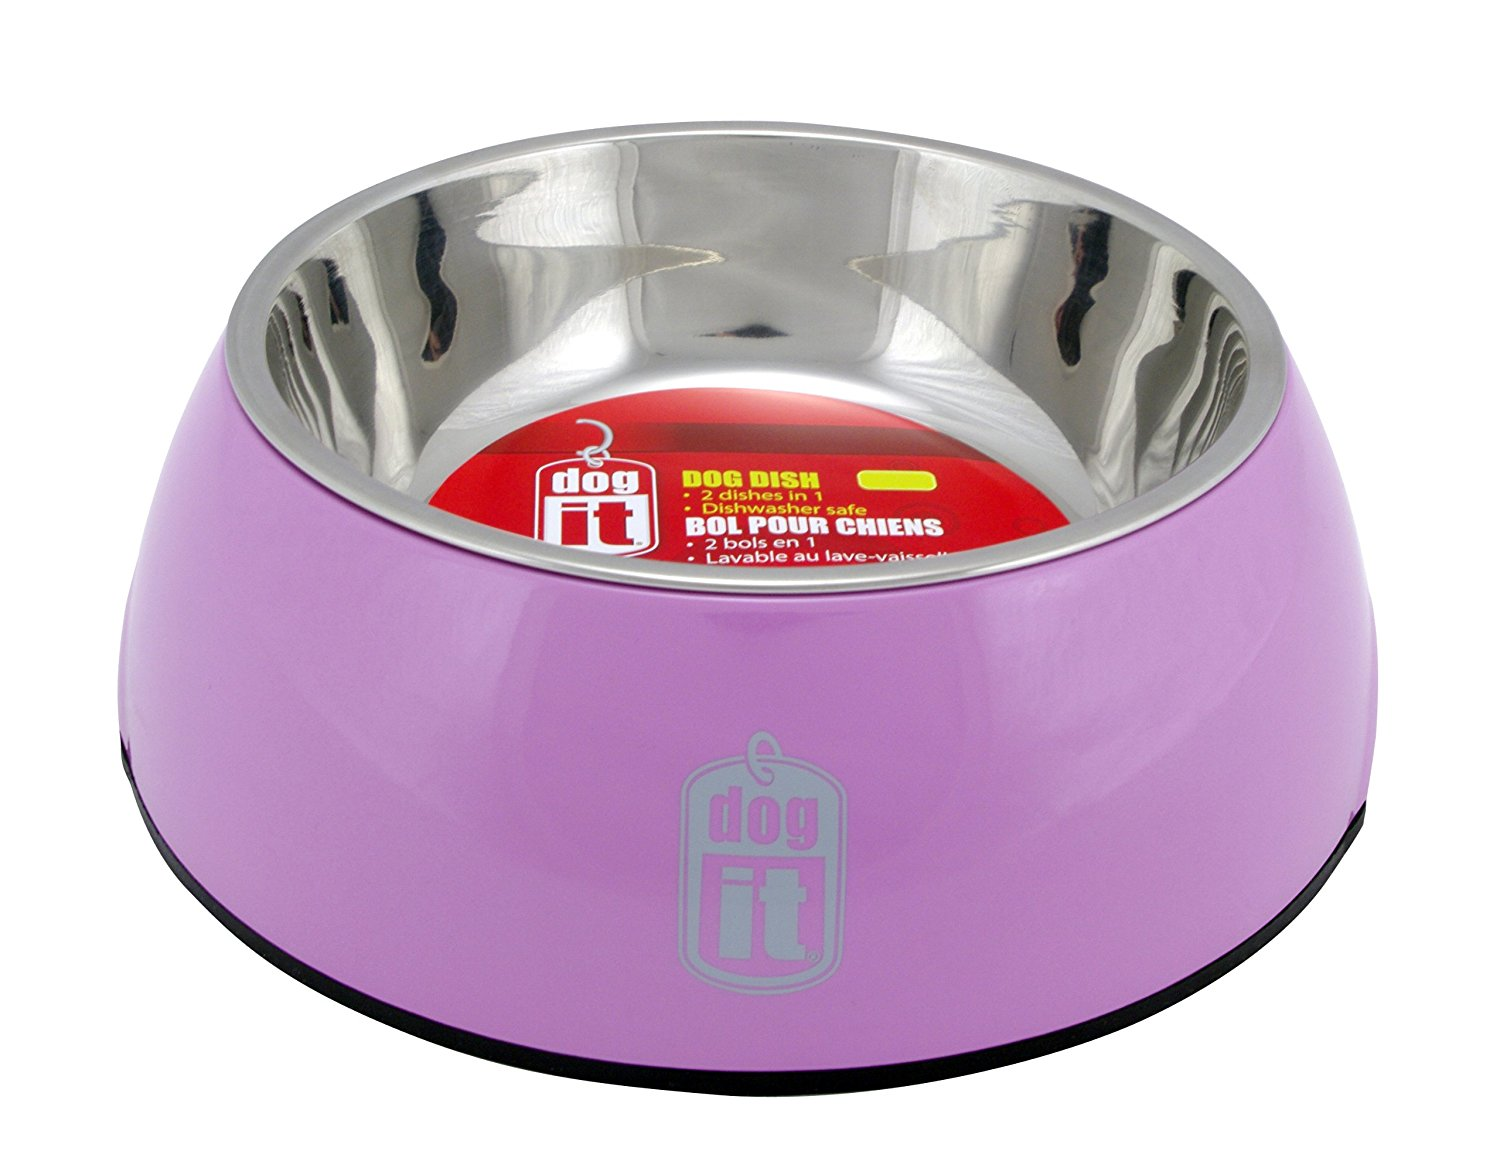 Dogit 2 in Durable Bowl with Stainless Steel Insert Medium 700ml Pink